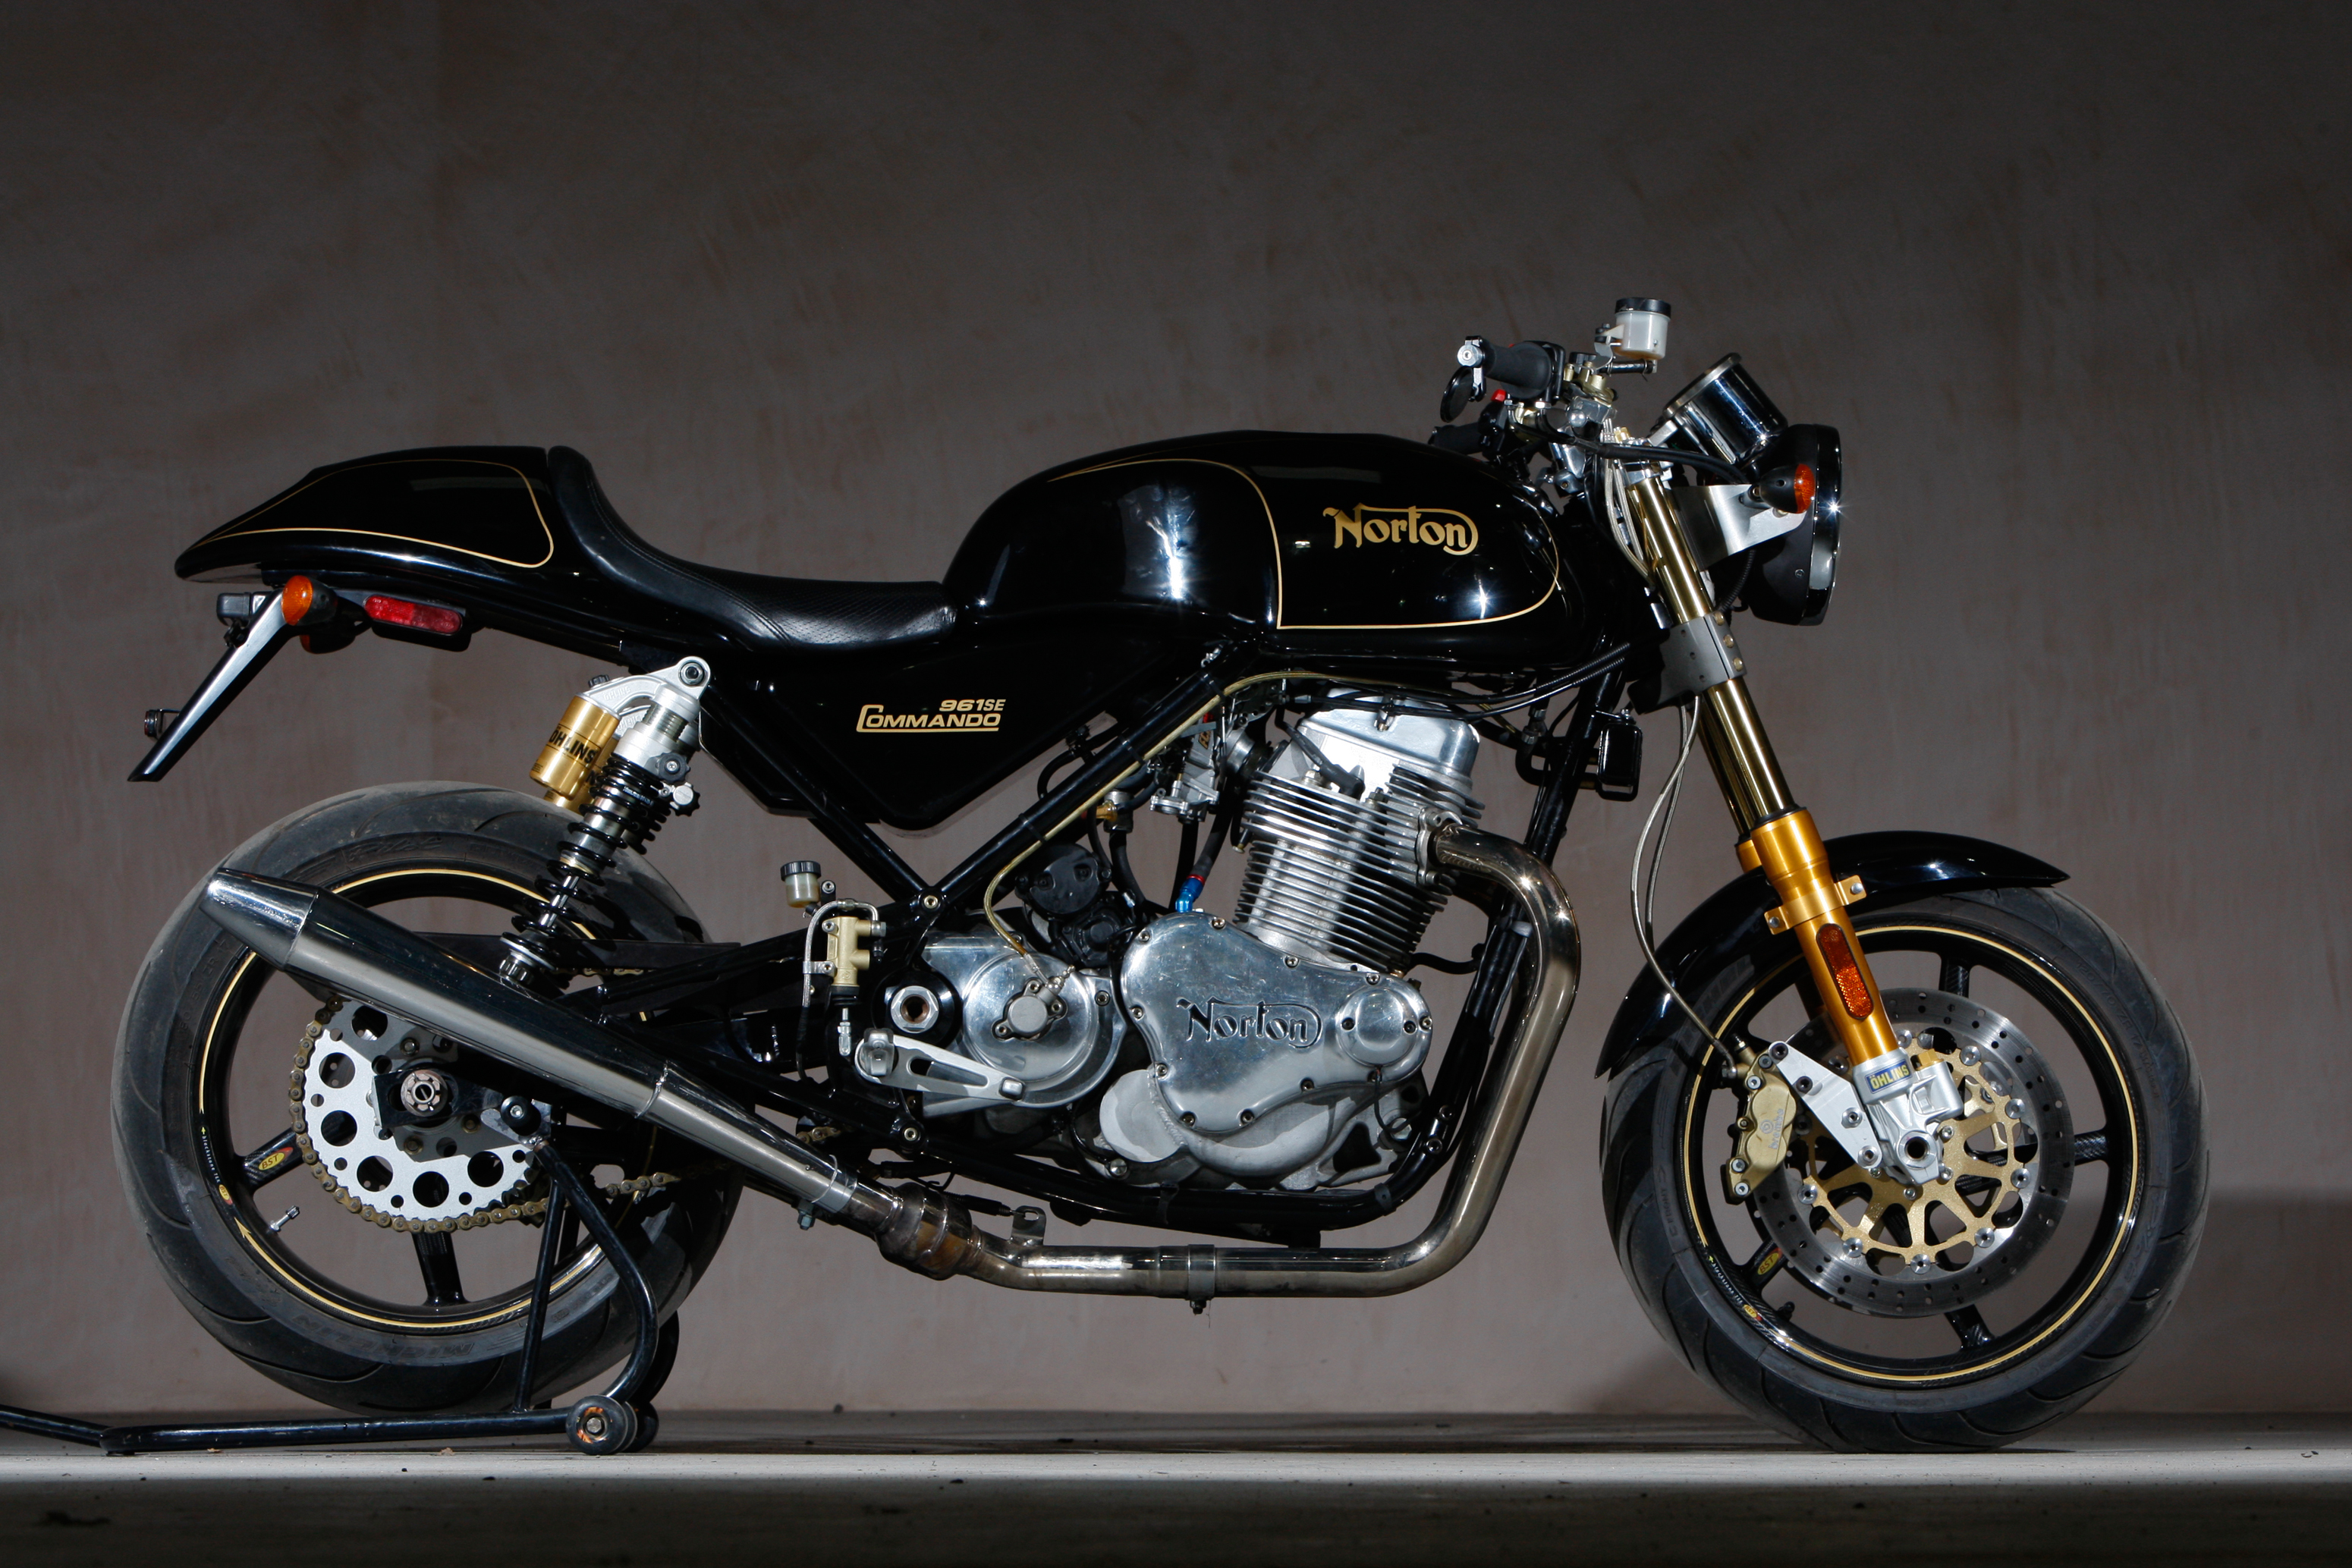 2010 Norton Commando 961 SE Wallpaper